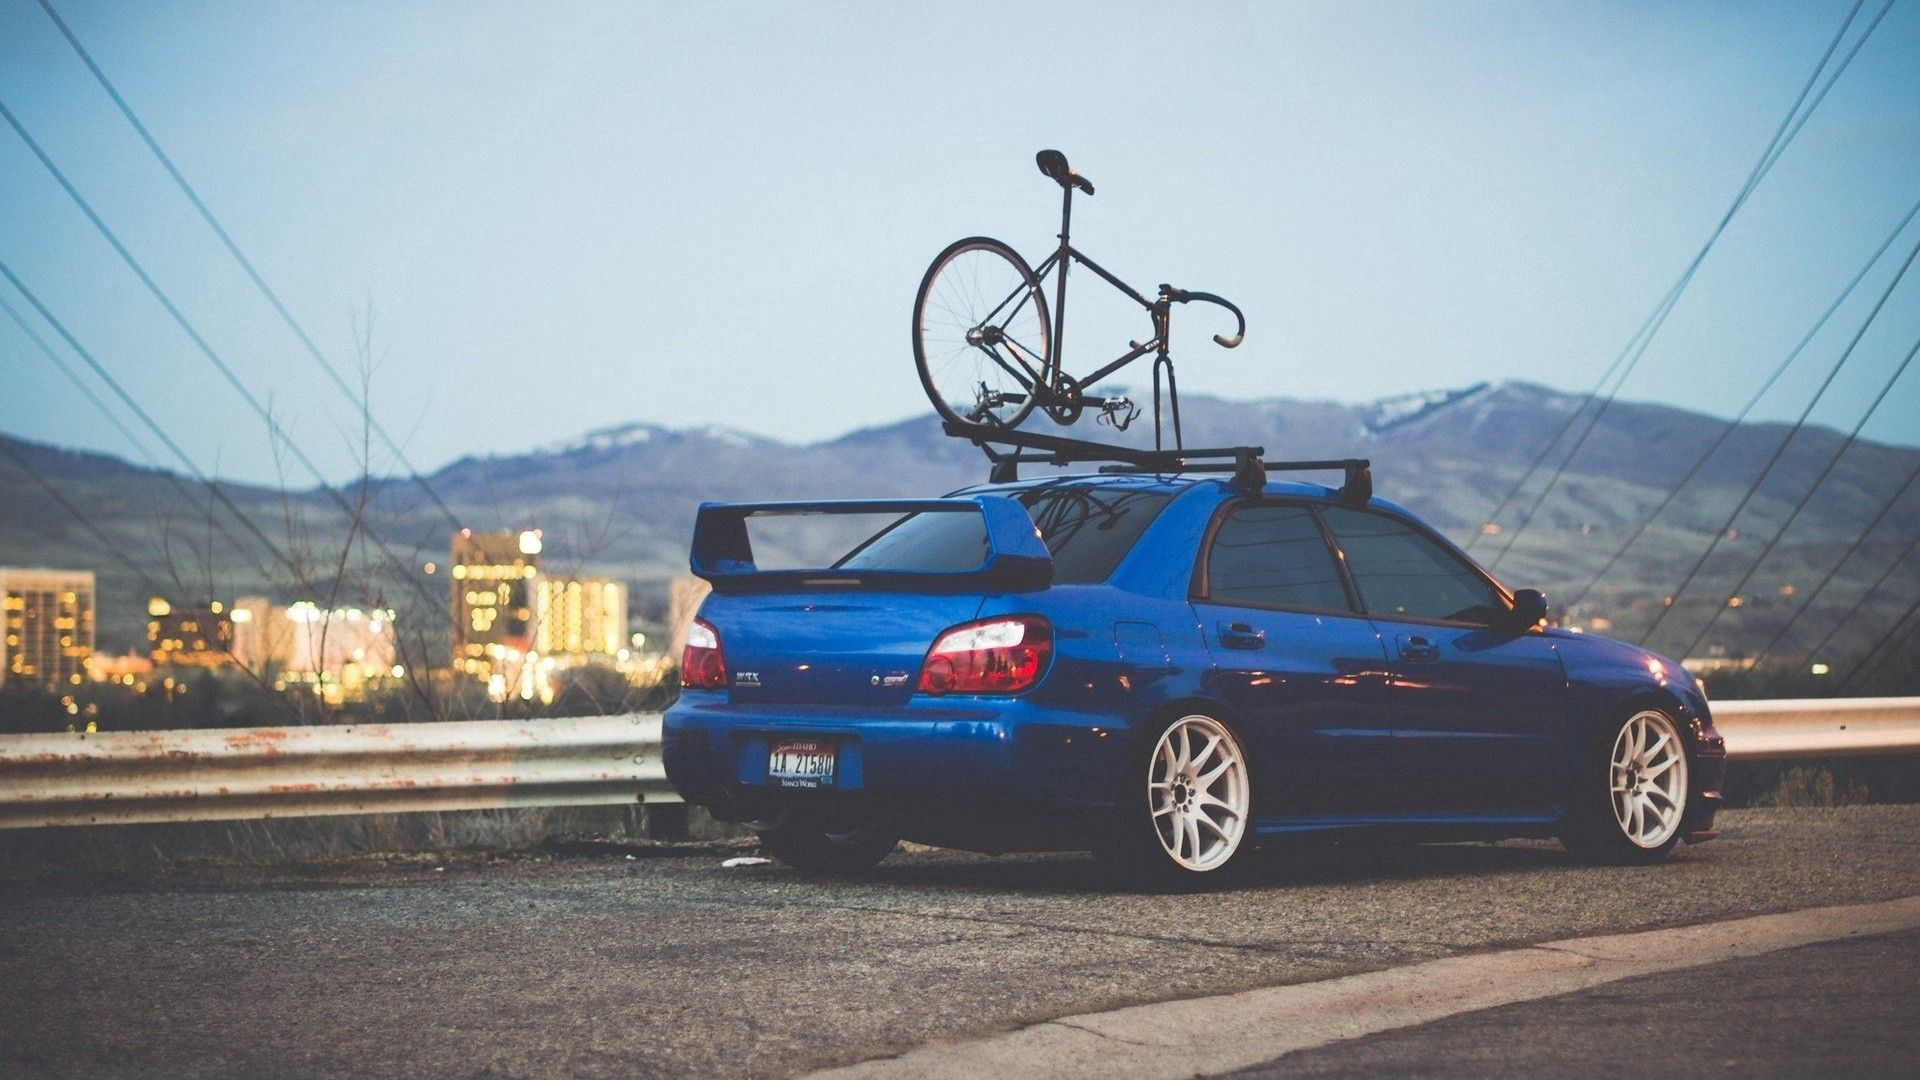 66835 download wallpaper Cars, Subaru, Auto, Bicycle screensavers and pictures for free